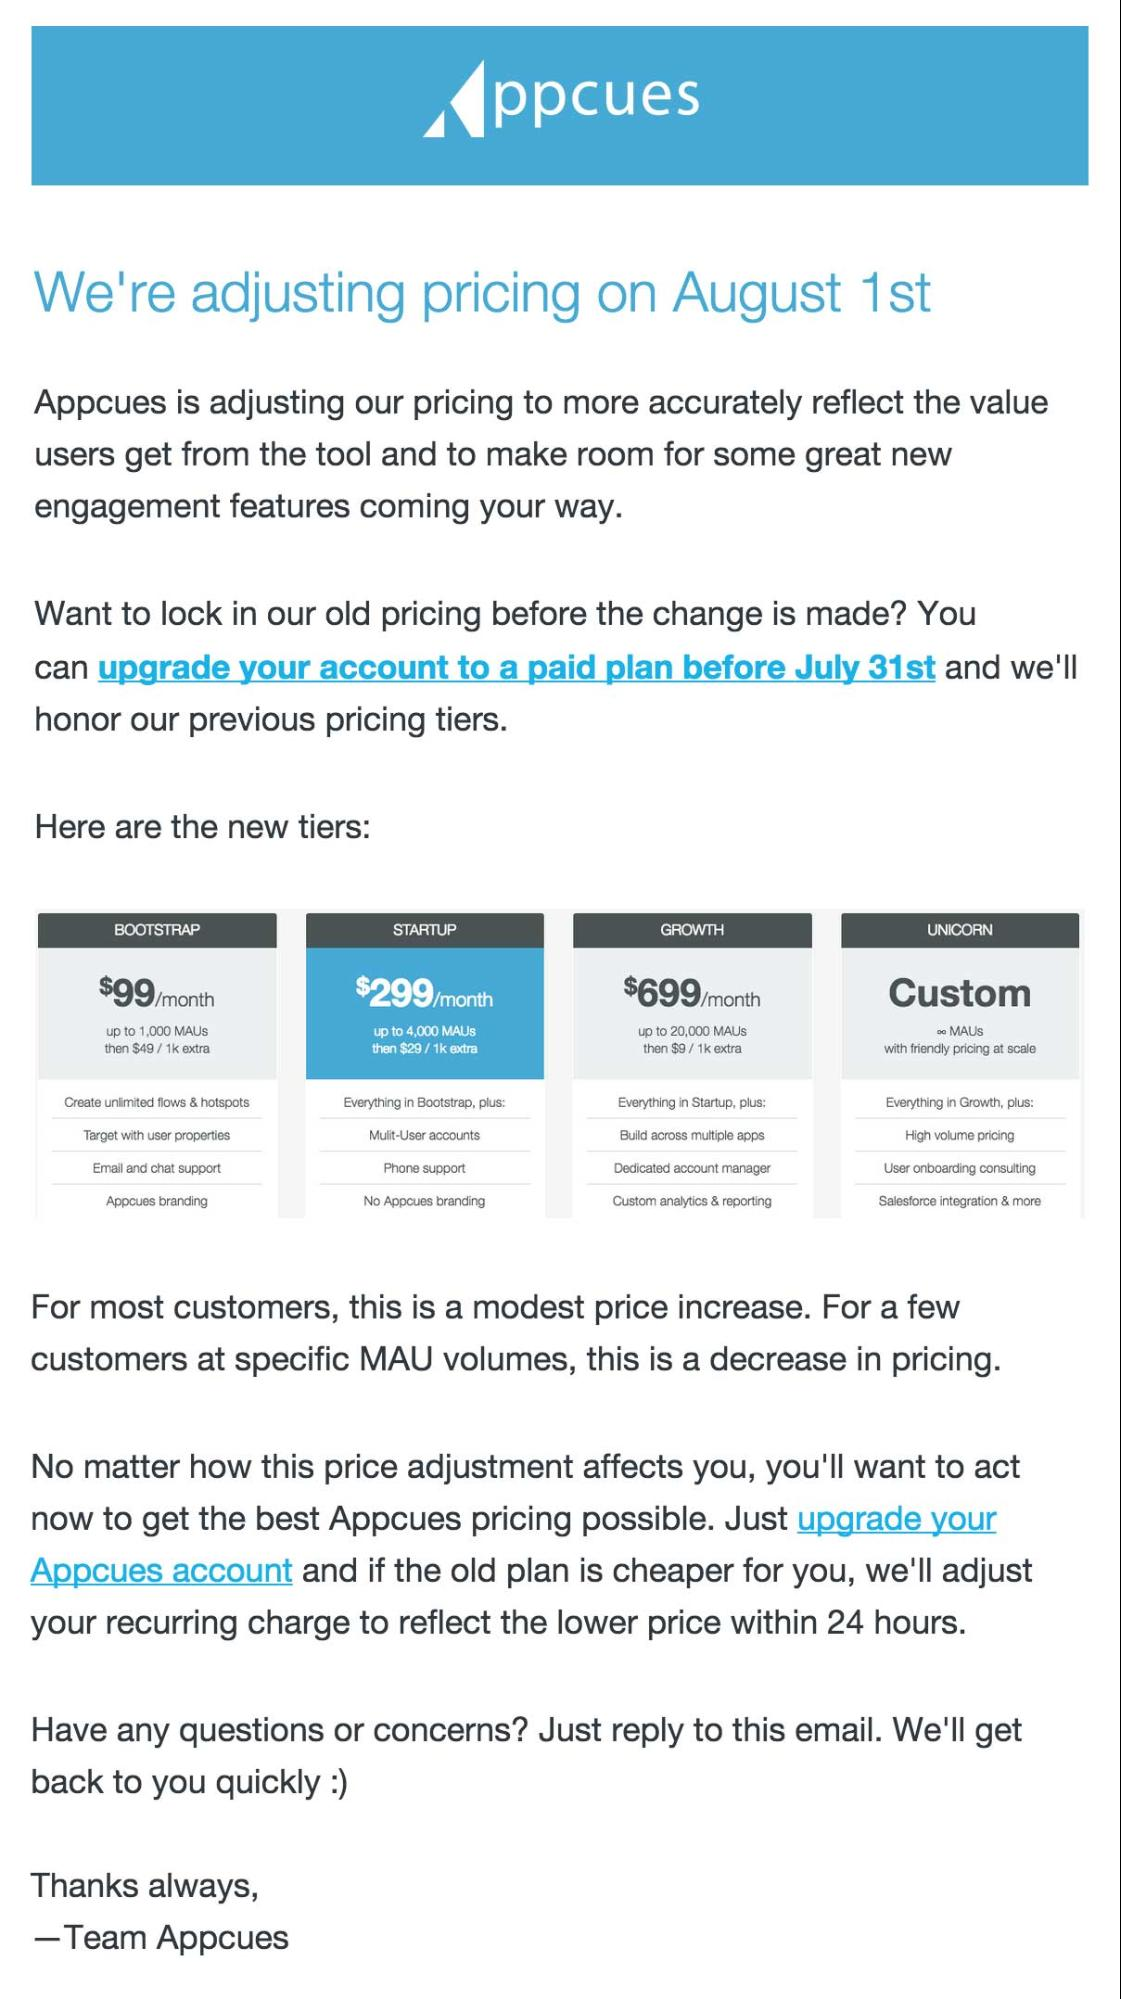 Appcues' email to customers notifying them of an upcoming pricing change